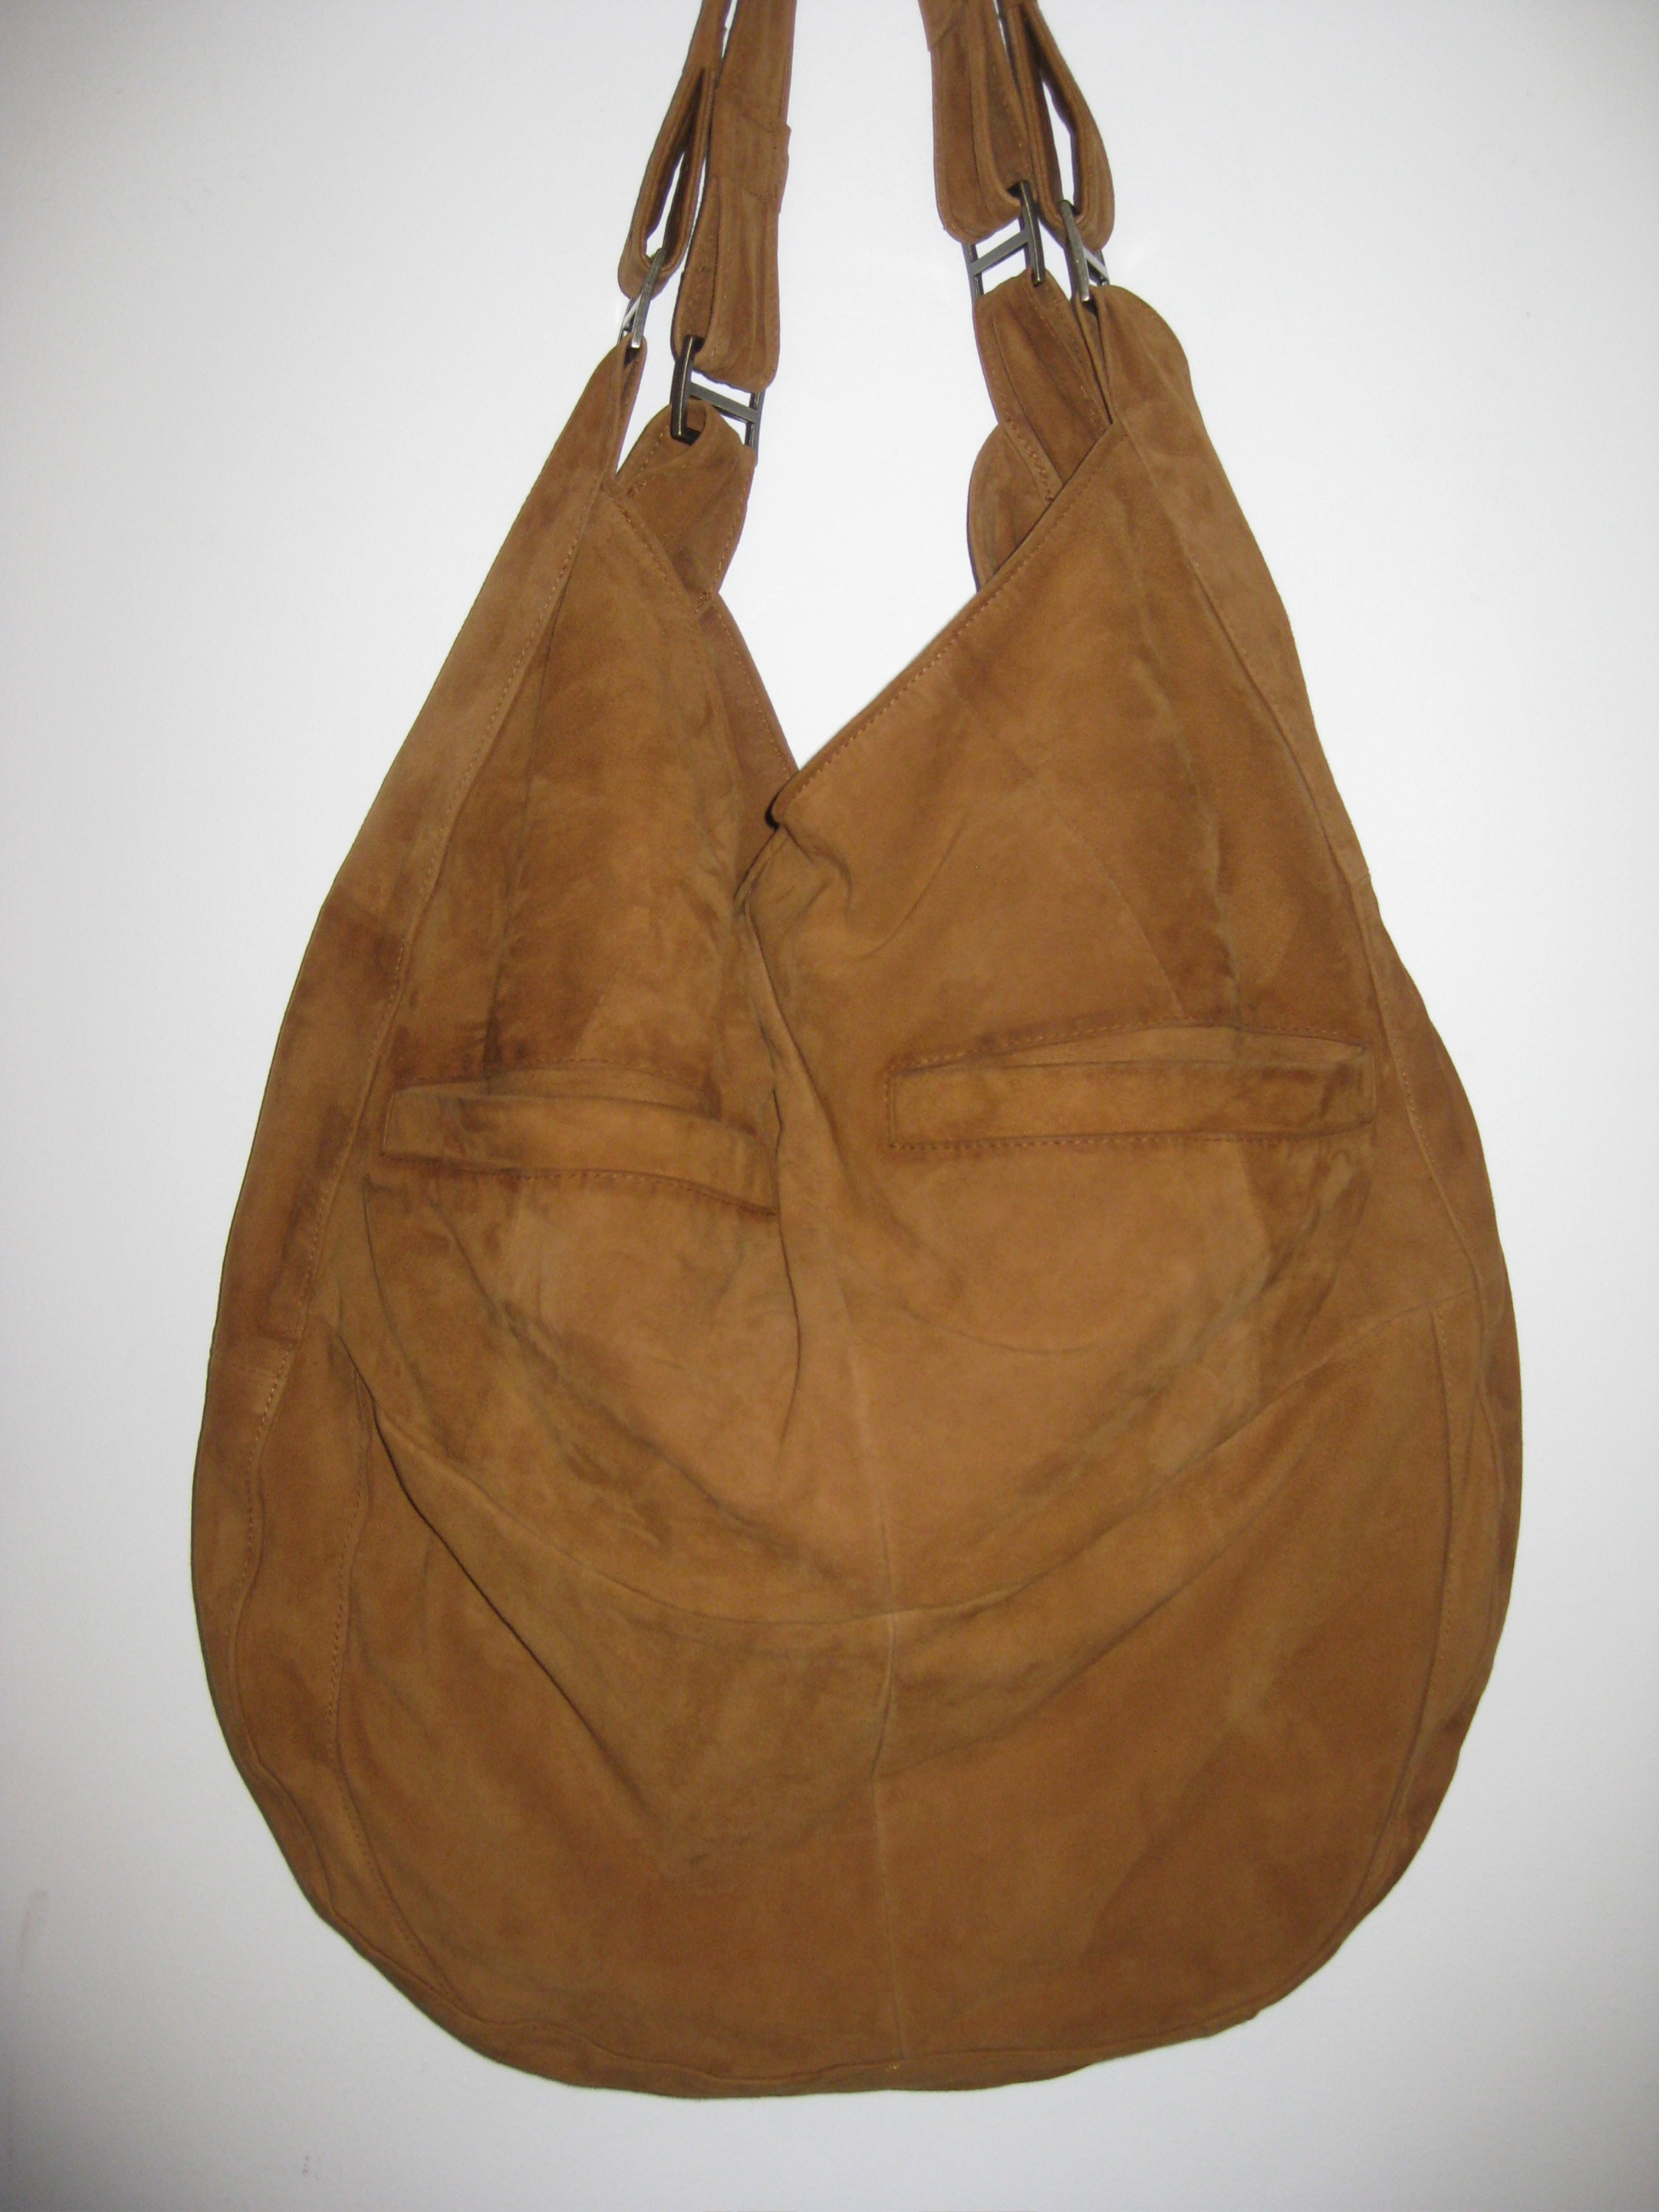 Tan leather hobo bag uk – New trendy bags models photo blog